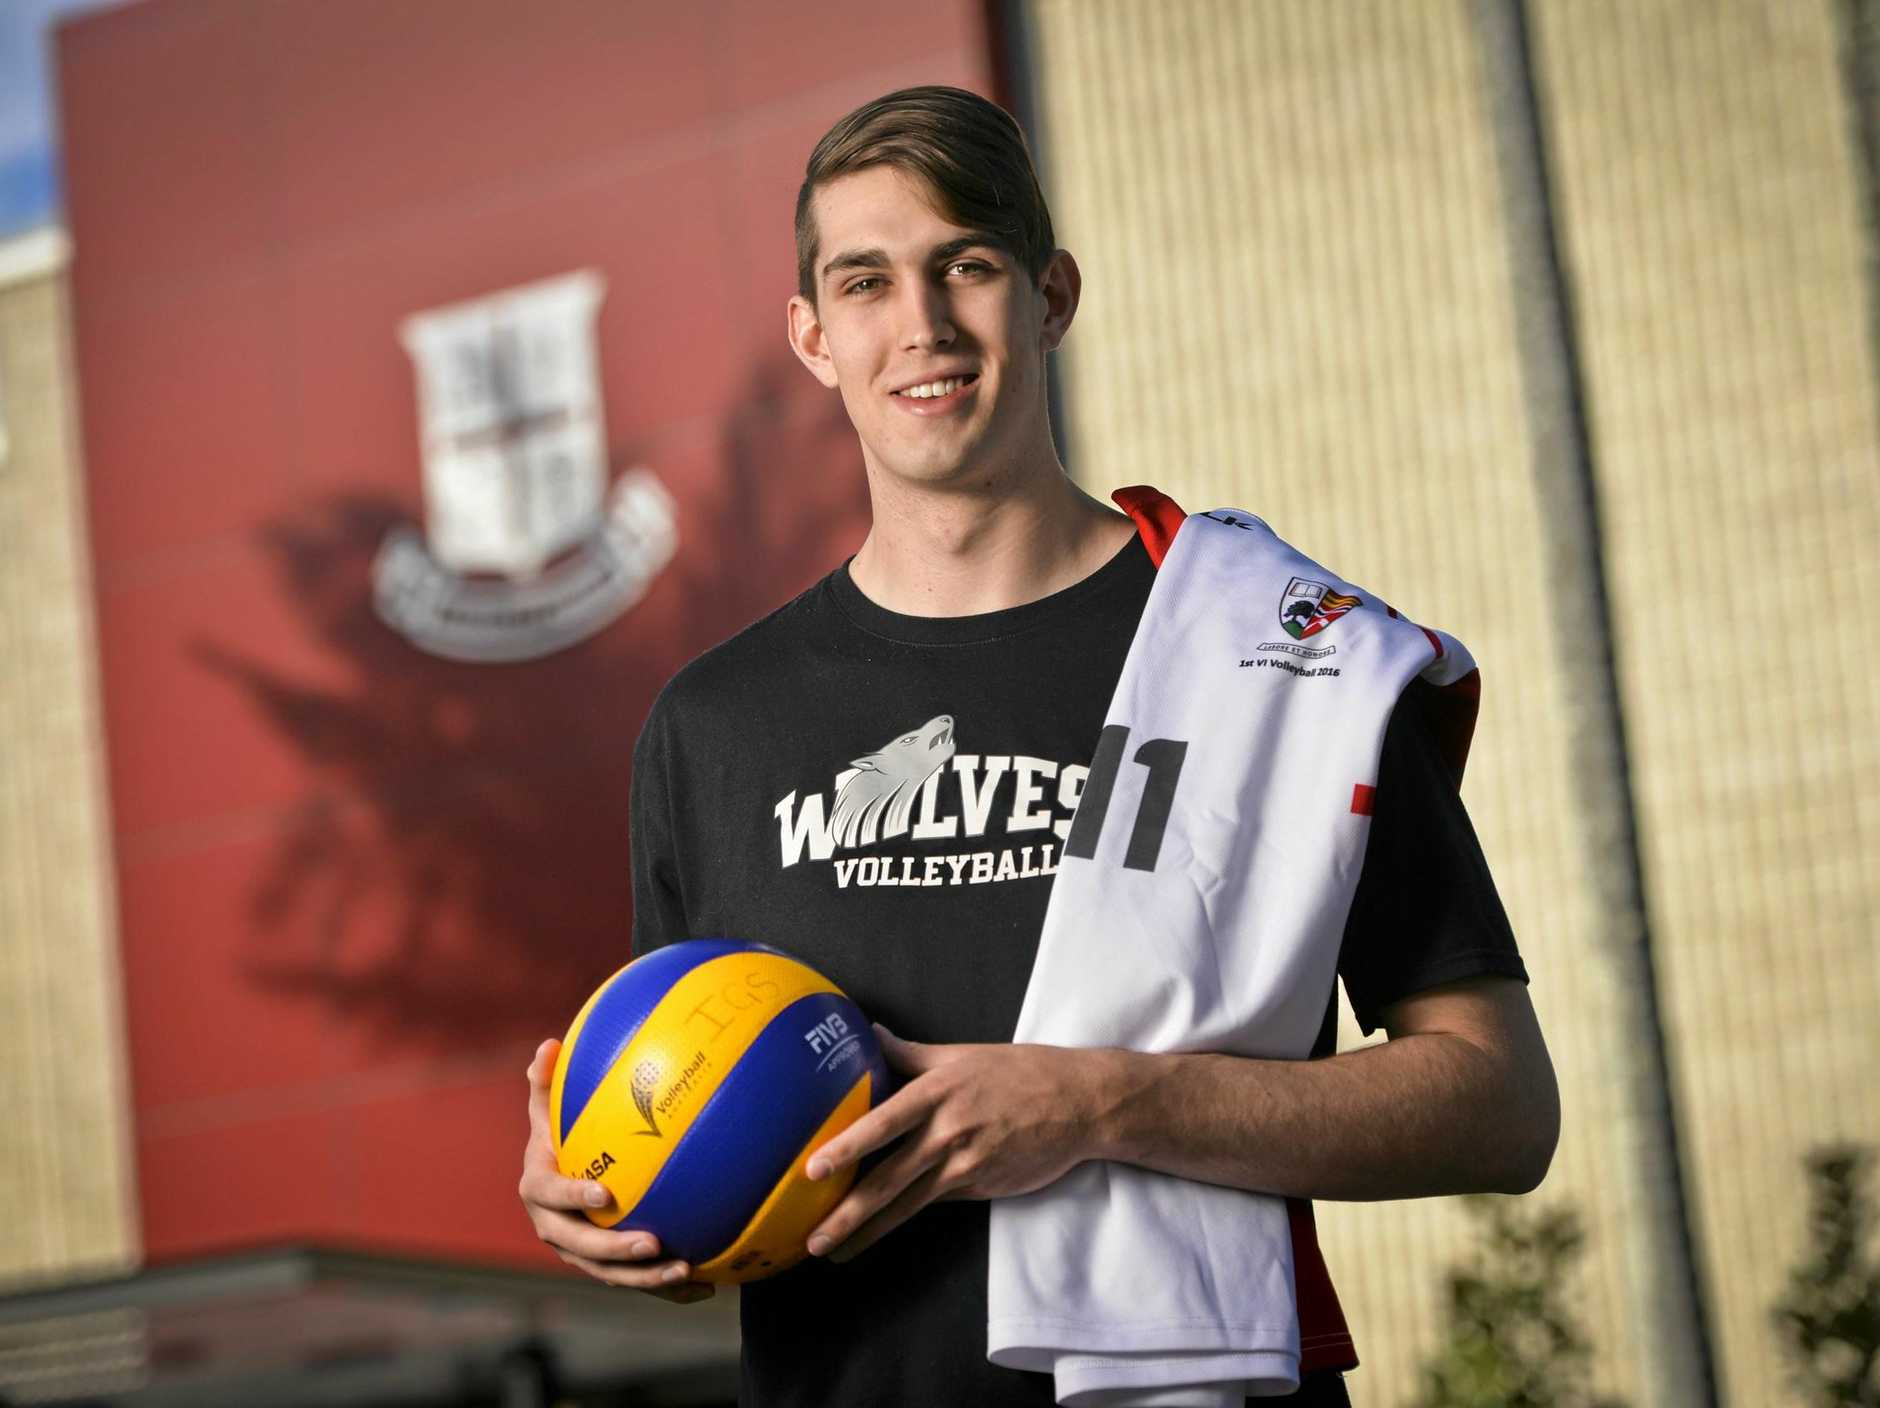 BACK HOME: Tom Wheeler still carries the colours of Ipswich Grammar School with him, even though he now plays for the Grande Prairie Wolves in the Canadian college system.